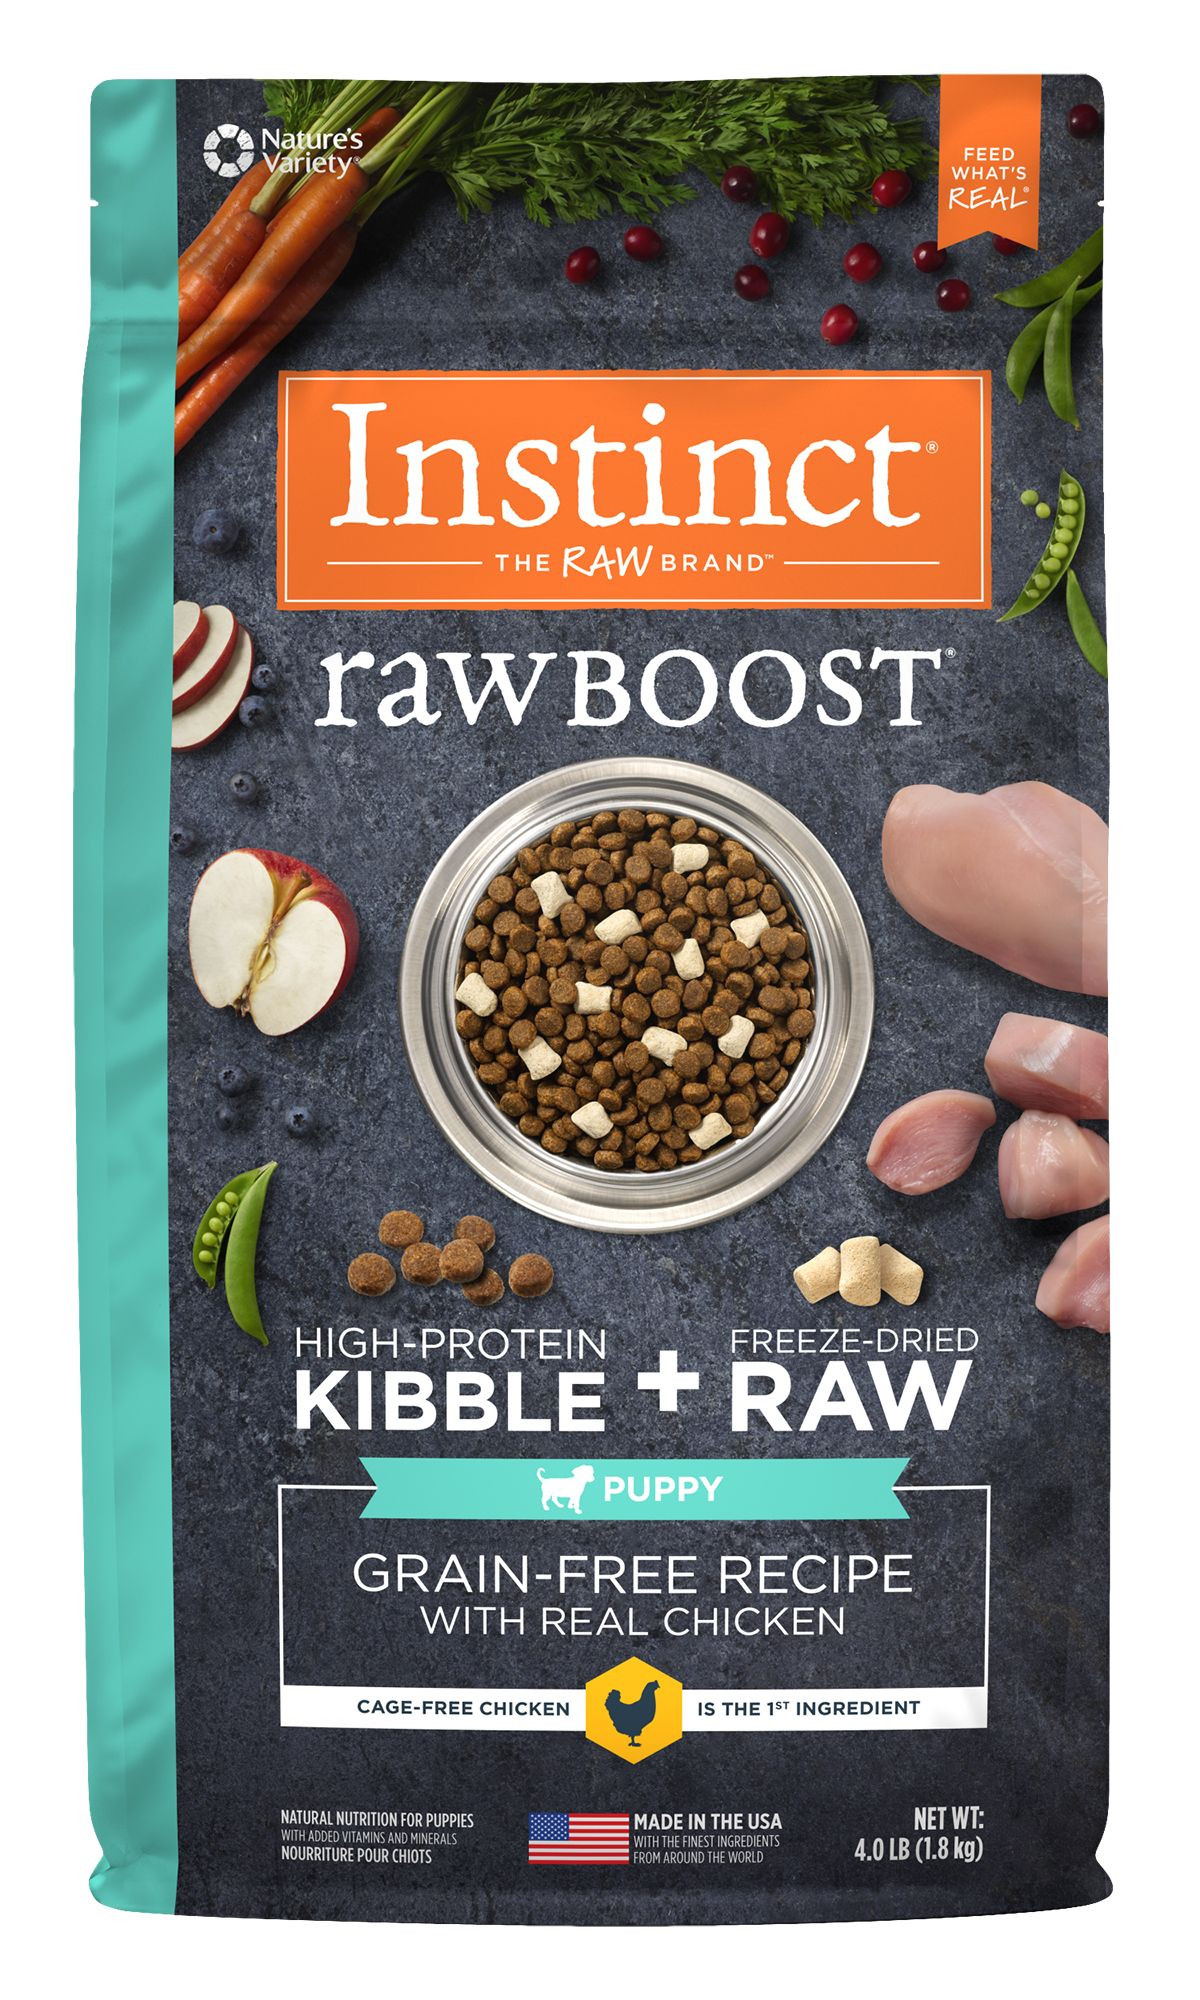 Raw Boost Grain-Free Recipe with Real Chicken for Puppies